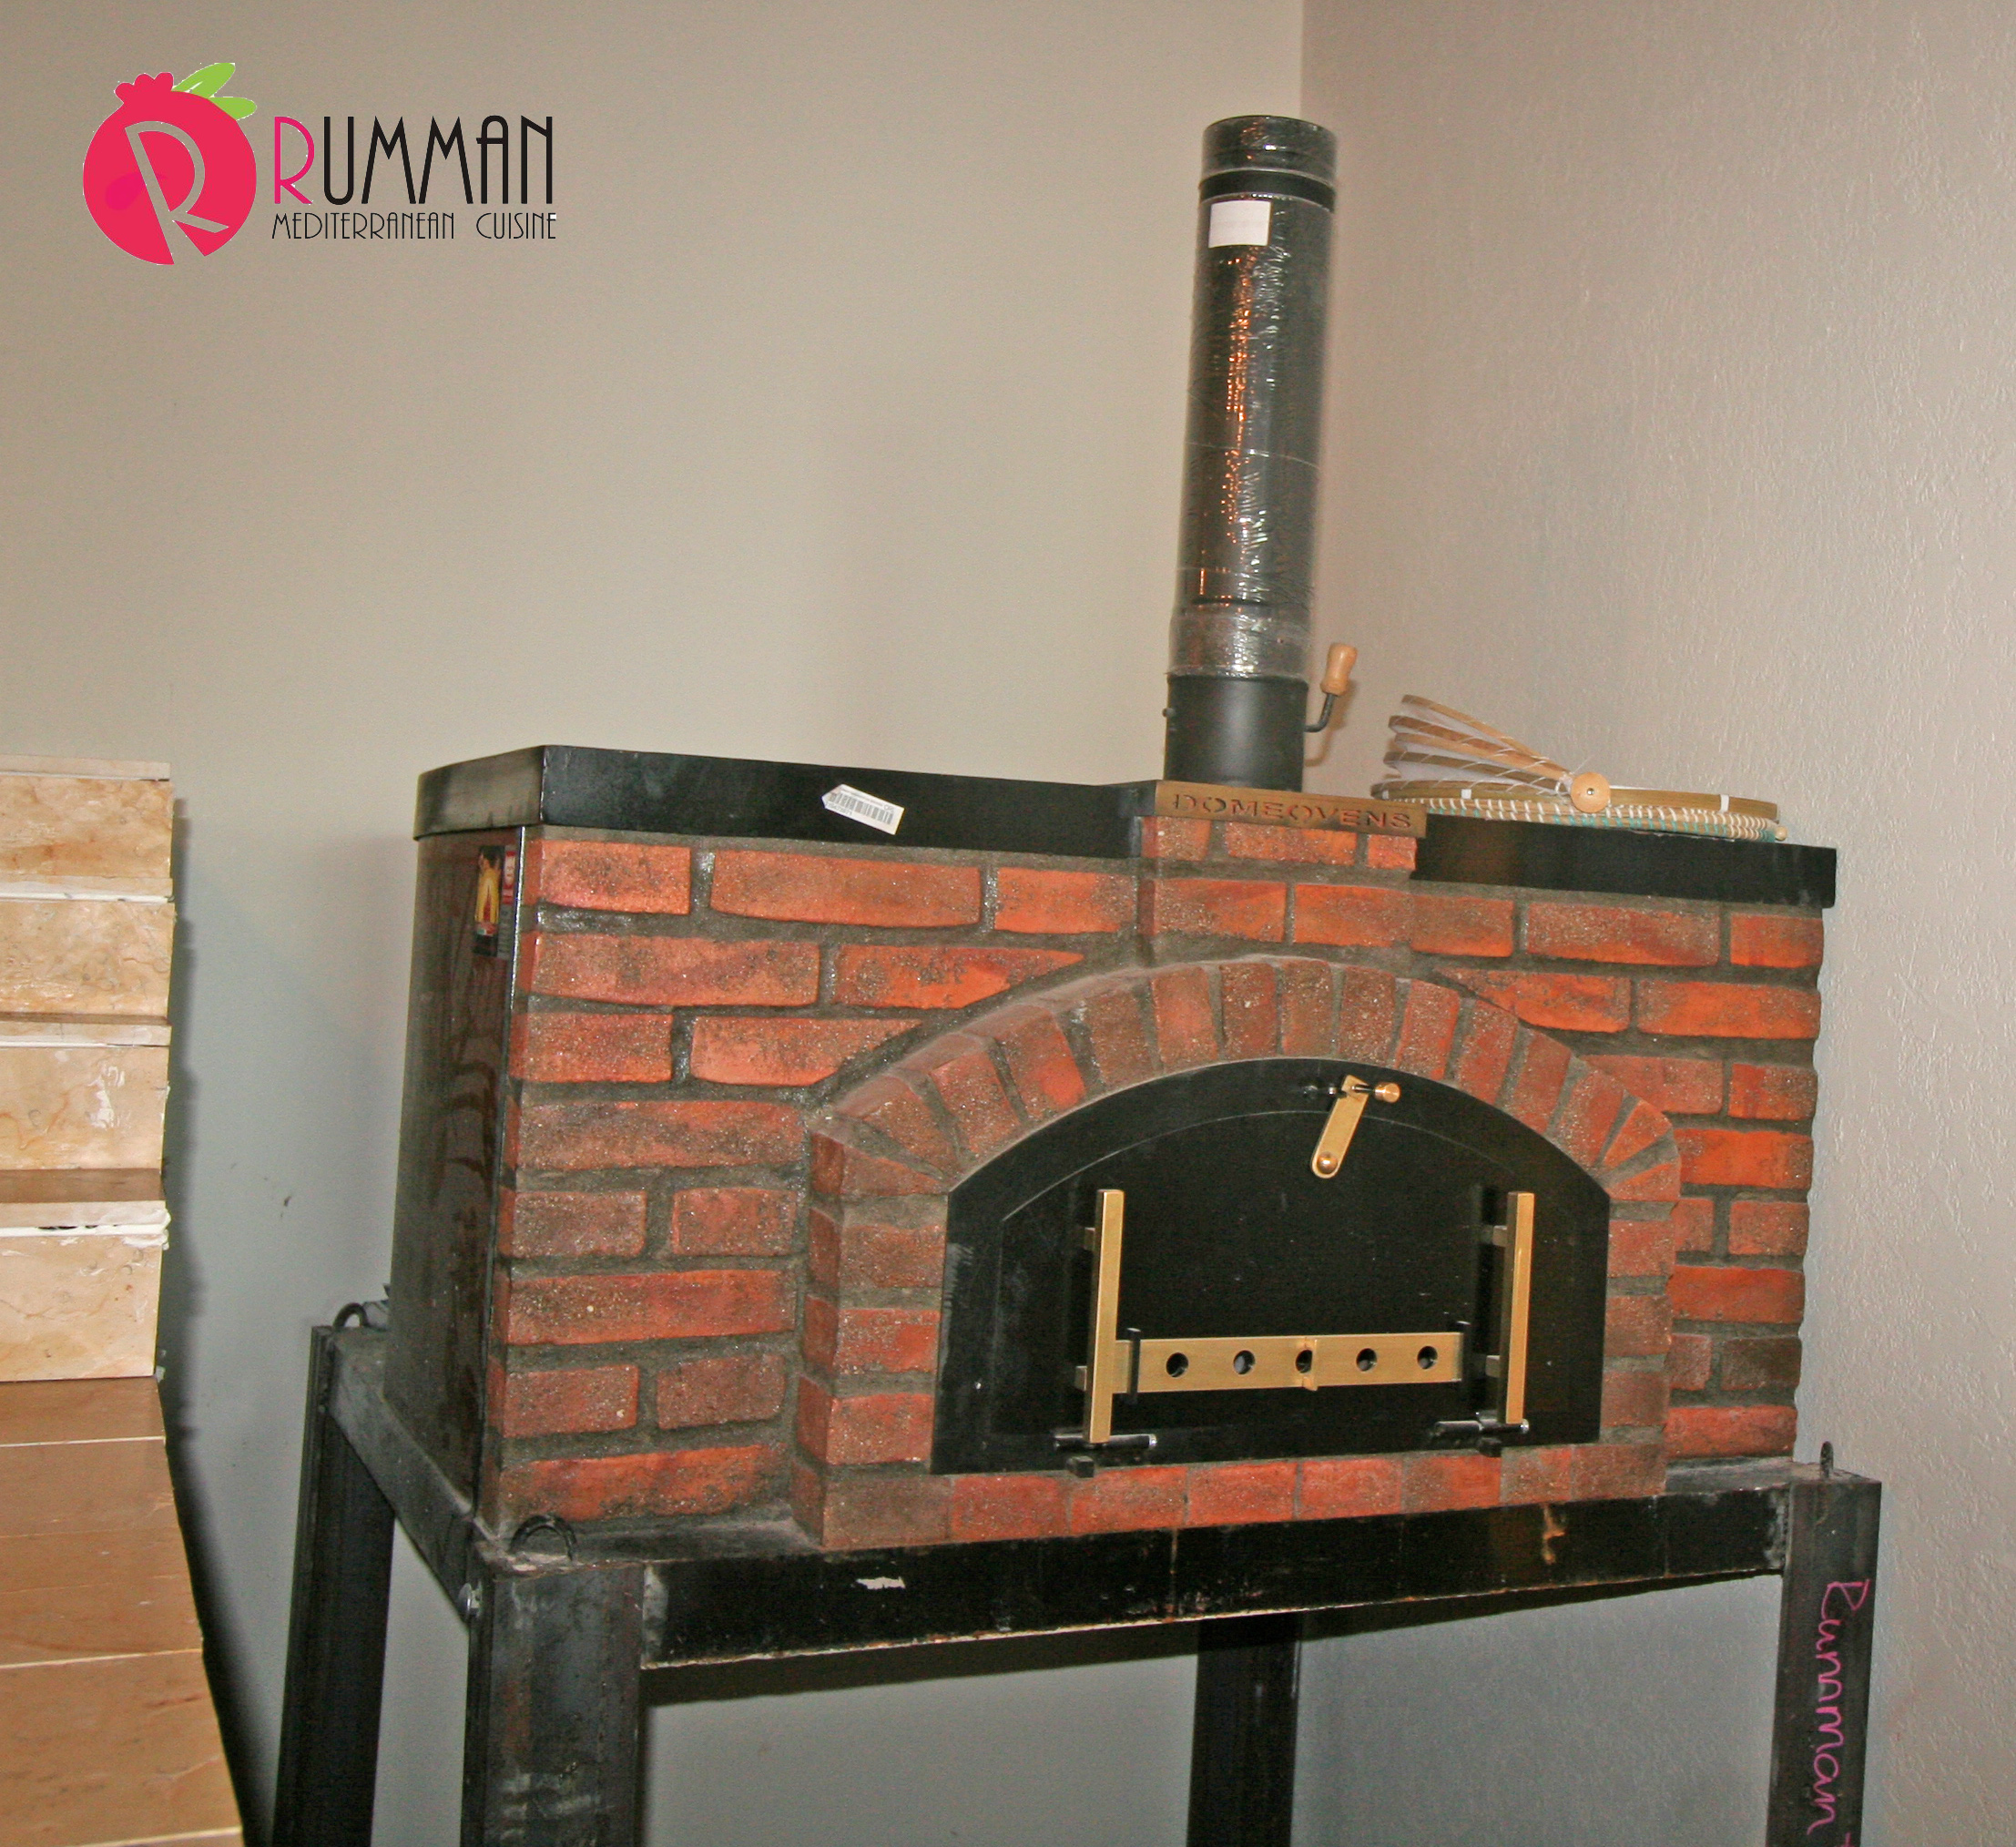 Rumman is a space filled with beautiful design details, smells of fresh baked pita from the wood oven,